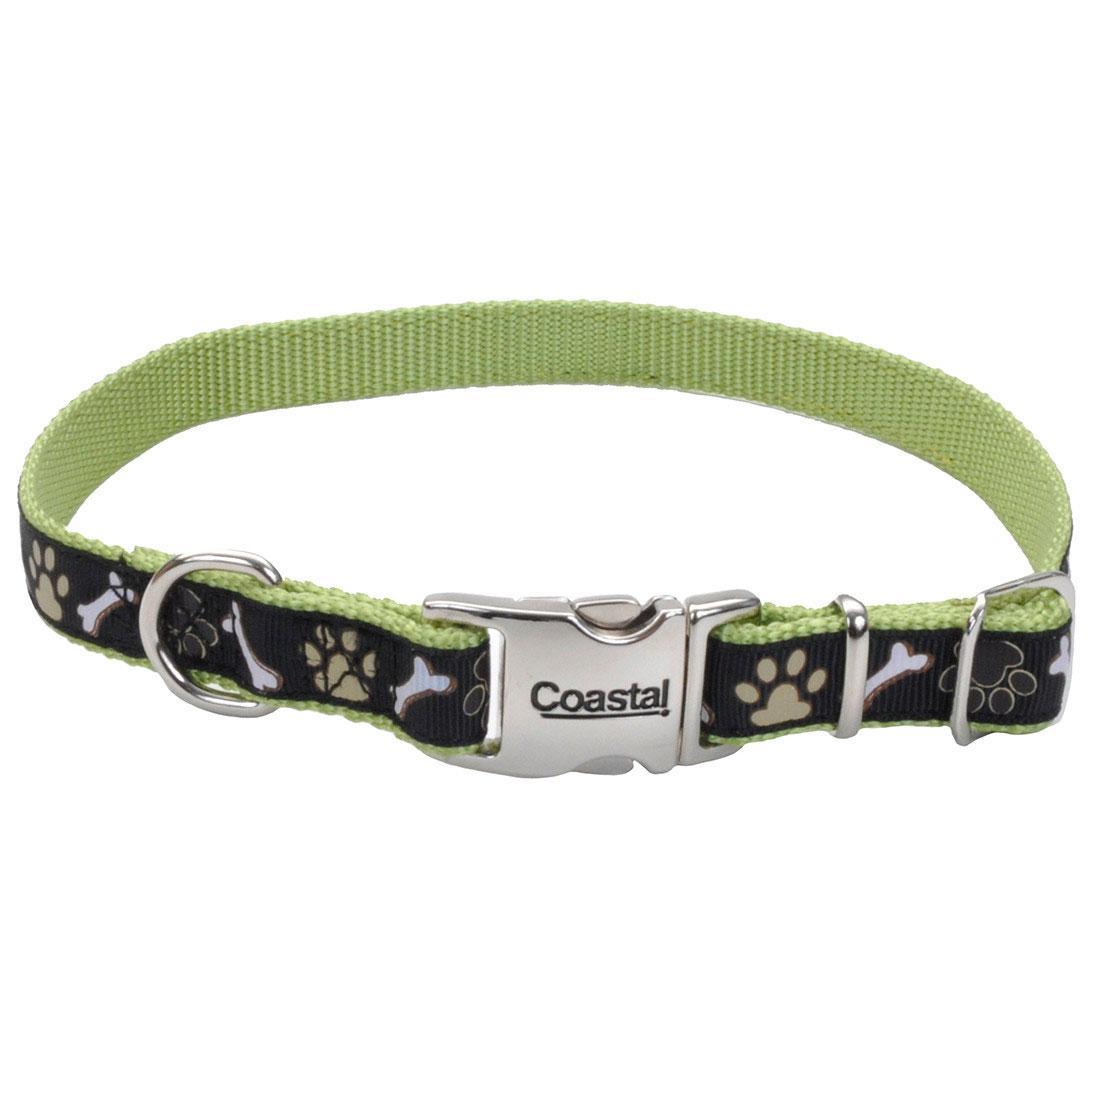 Ribbon Adjustable Collar with Metal Buckle for Dogs, Brown Paws & Bones Image